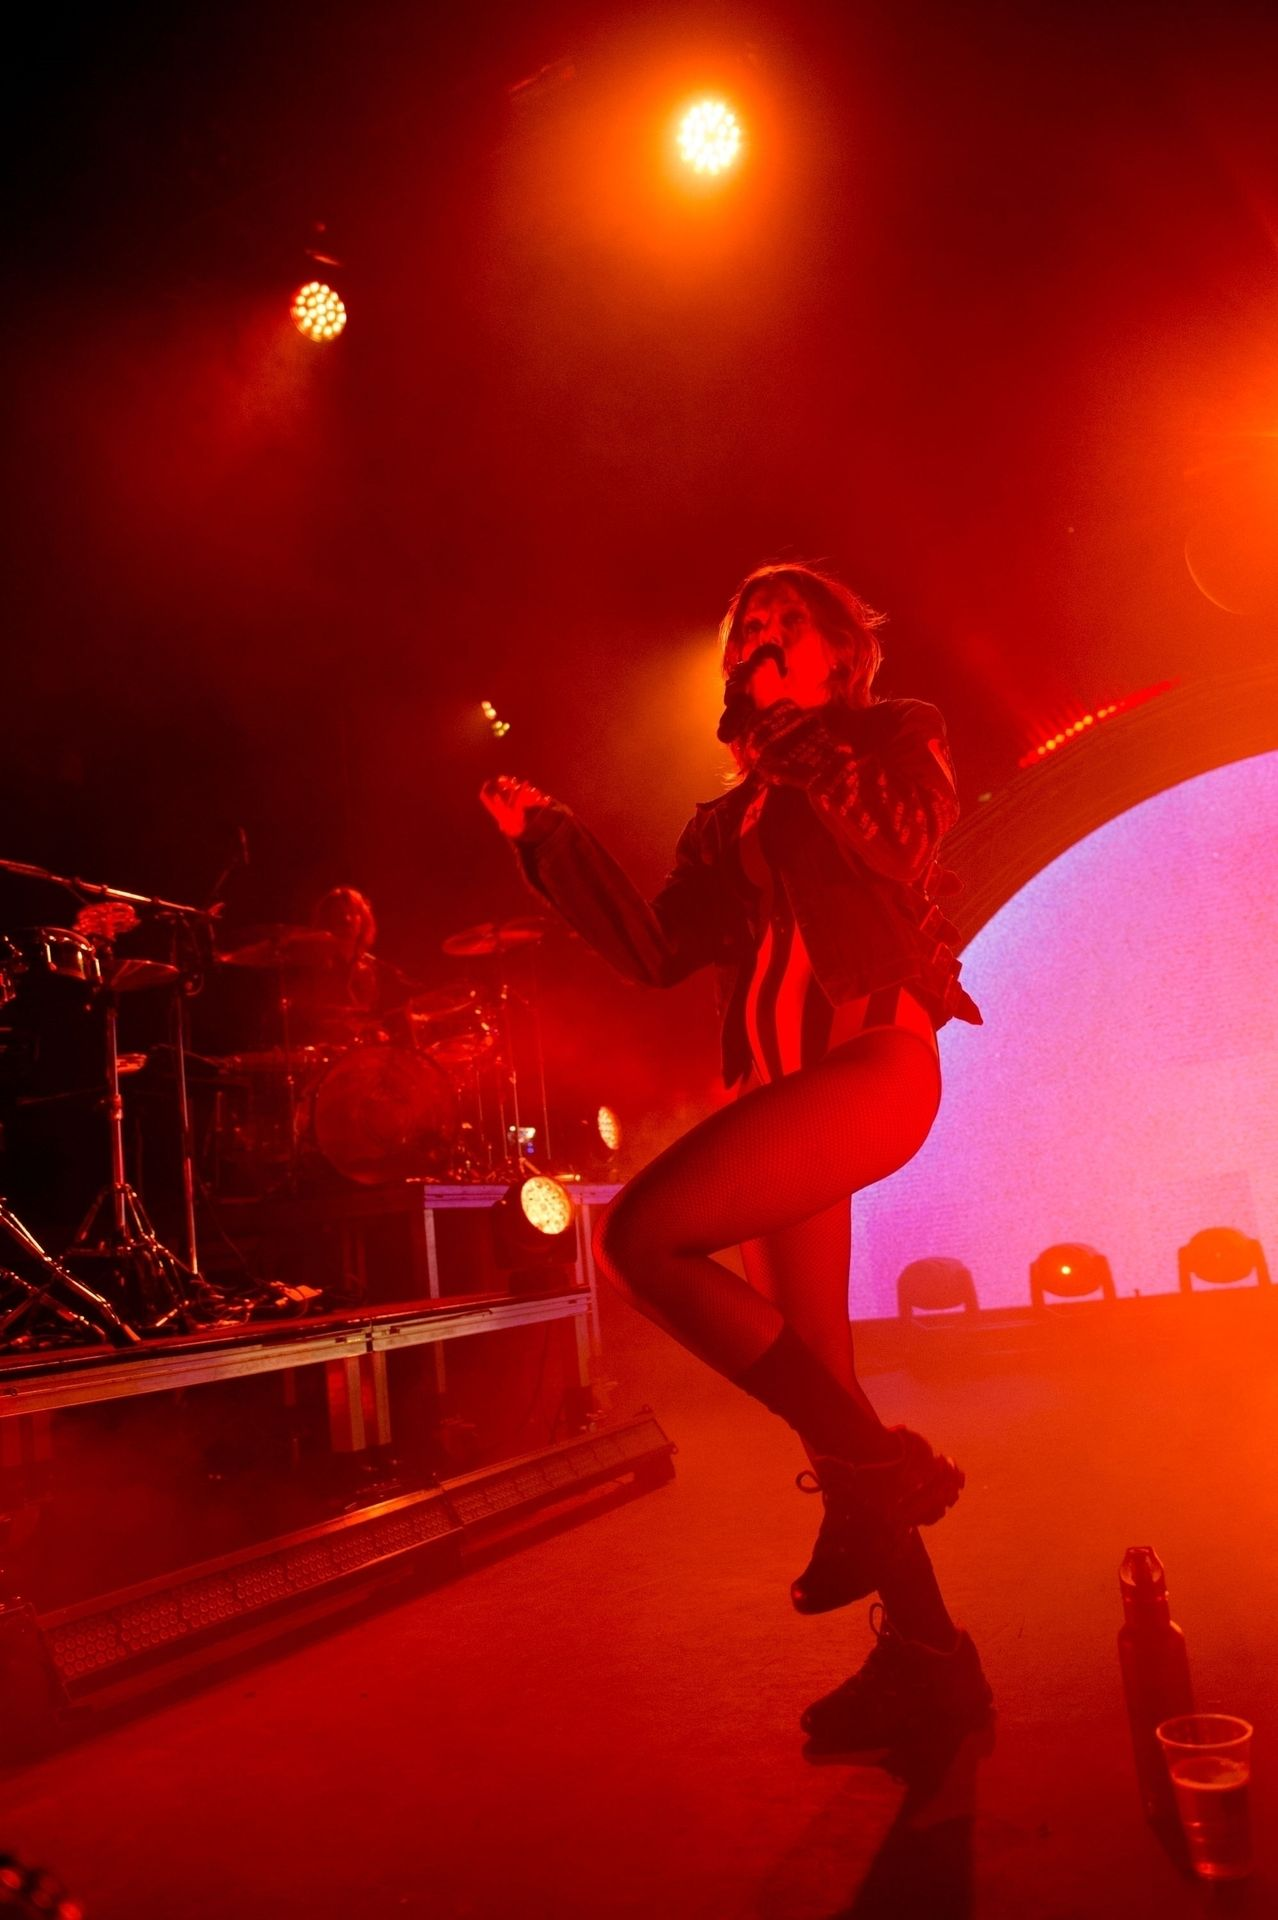 Tove Lo Is In Concert Performing Live At O2 Forum Kentish Town In London 0045